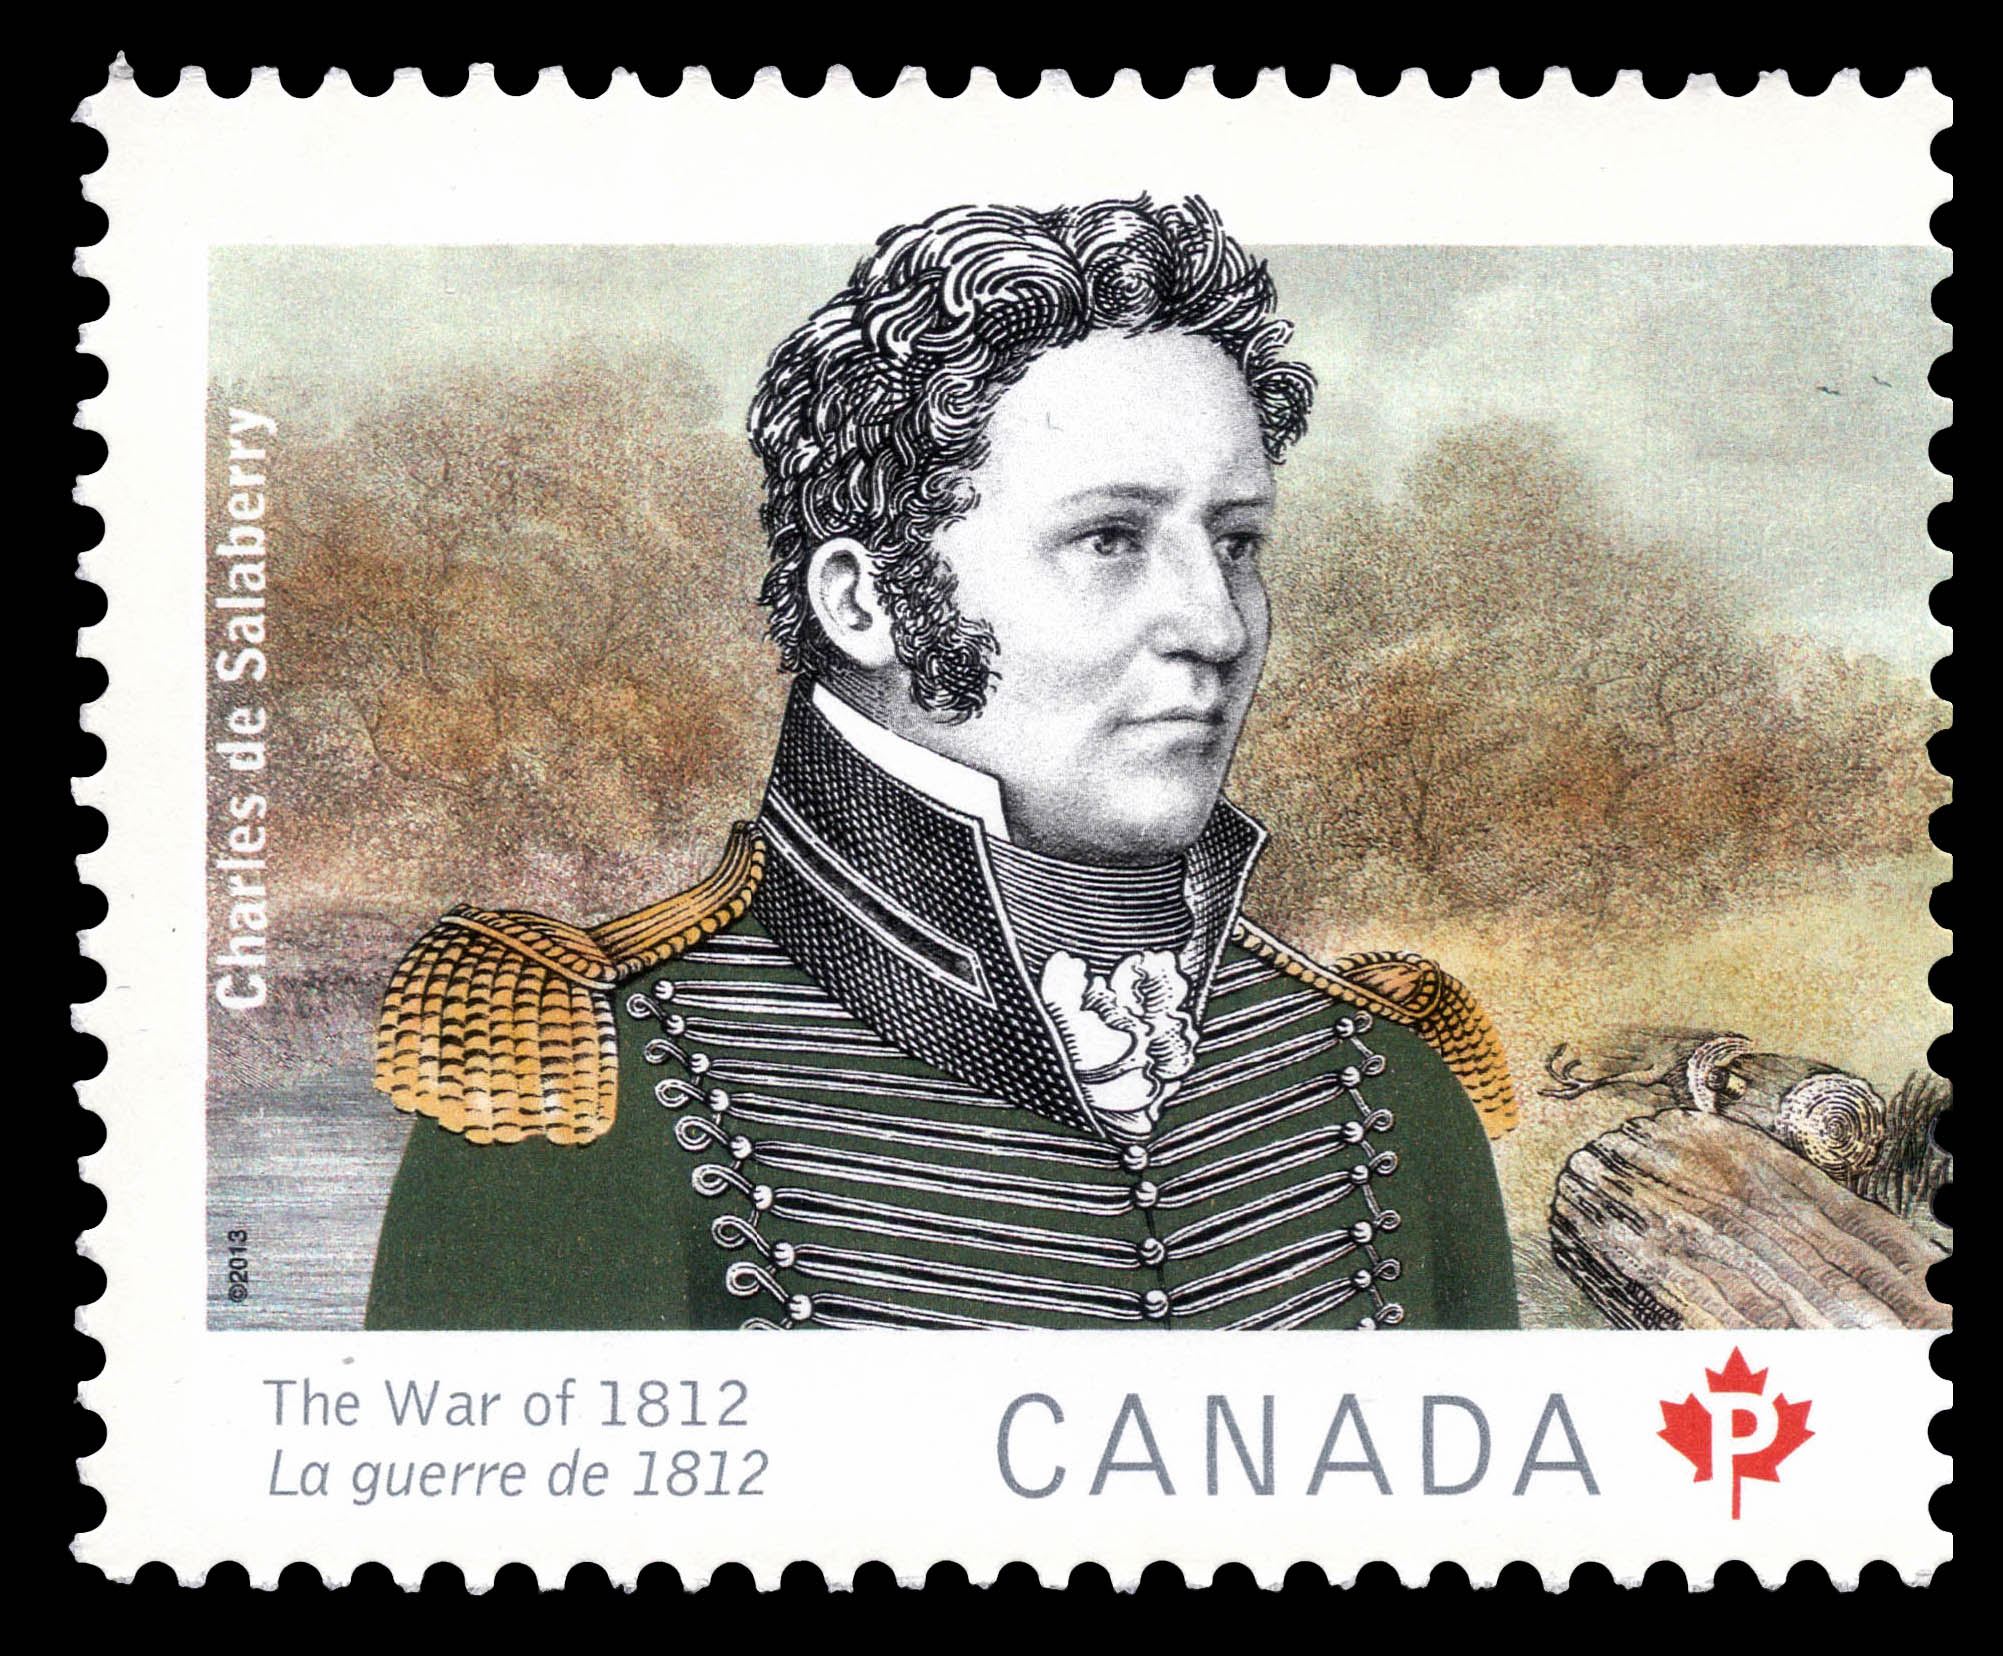 Charles de Salaberry Canada Postage Stamp | The War of 1812